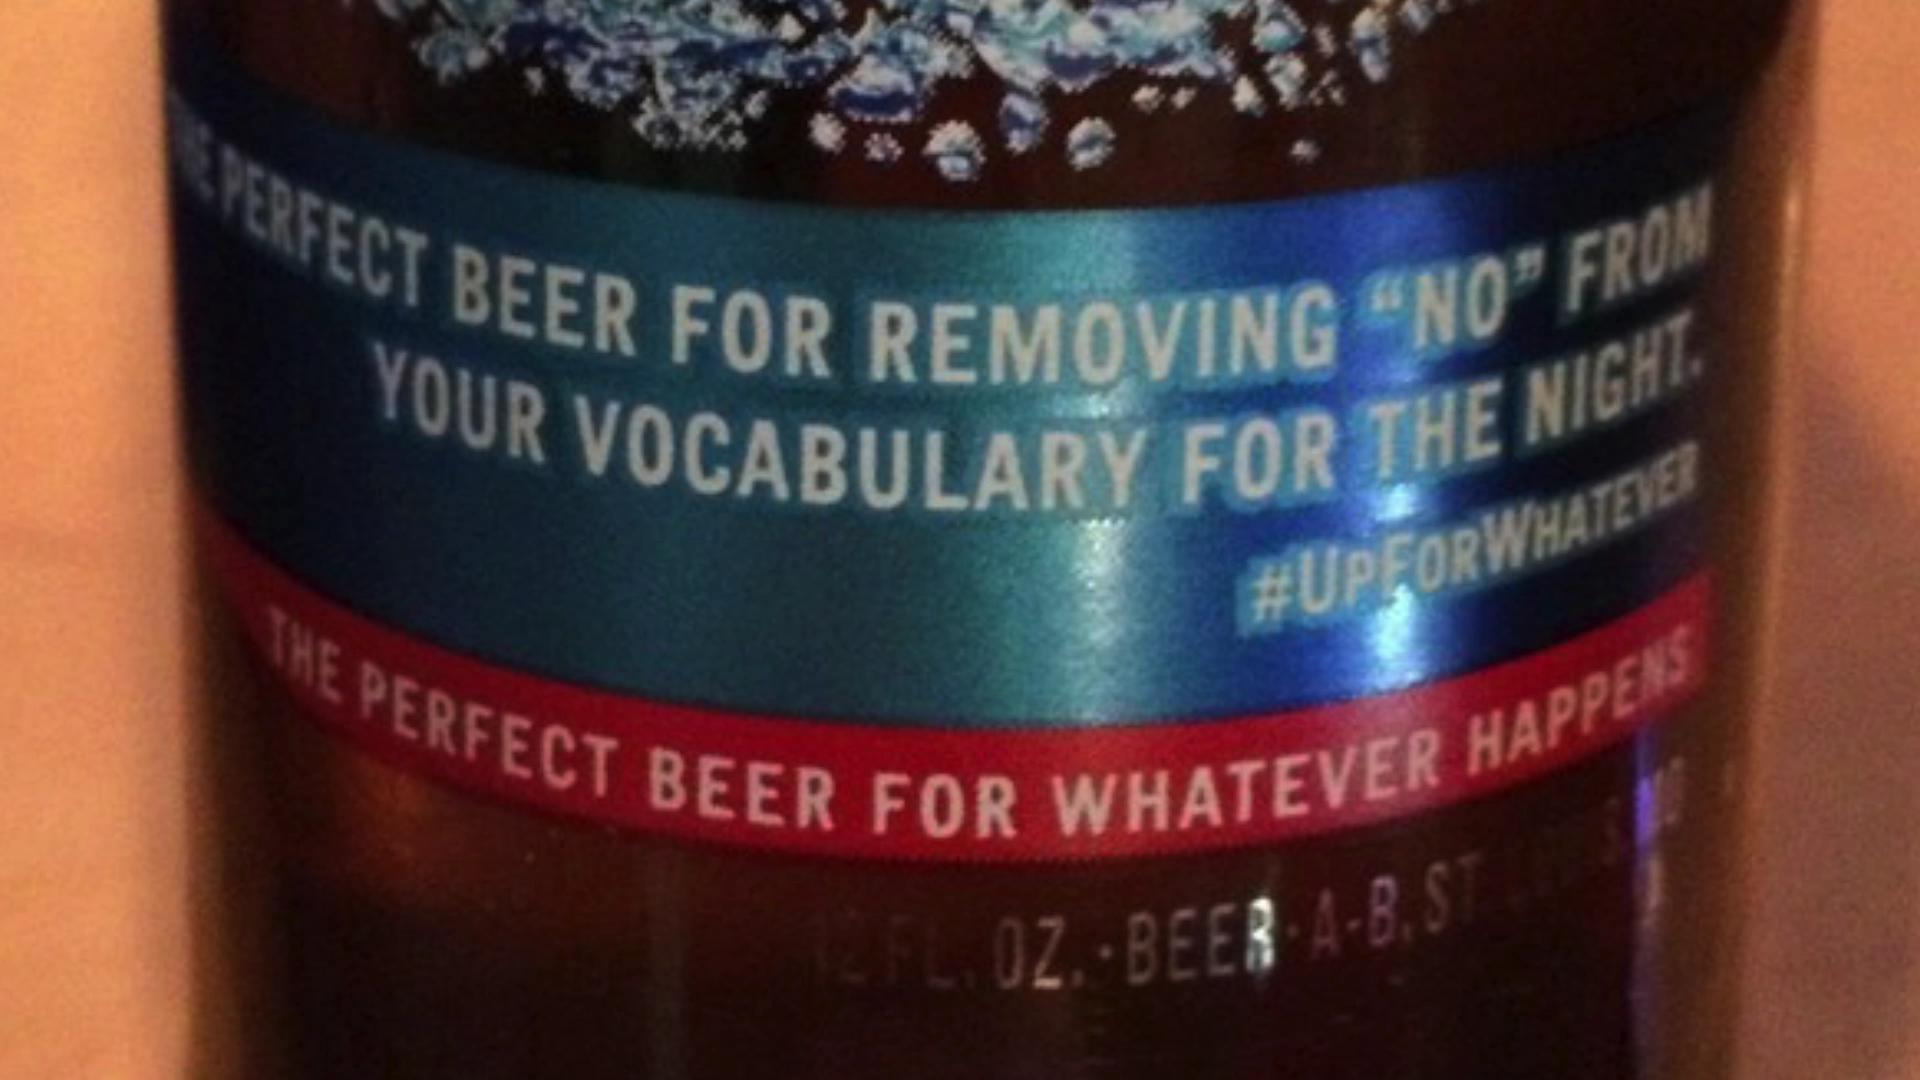 Bud light apologizes for removing no label aloadofball Gallery